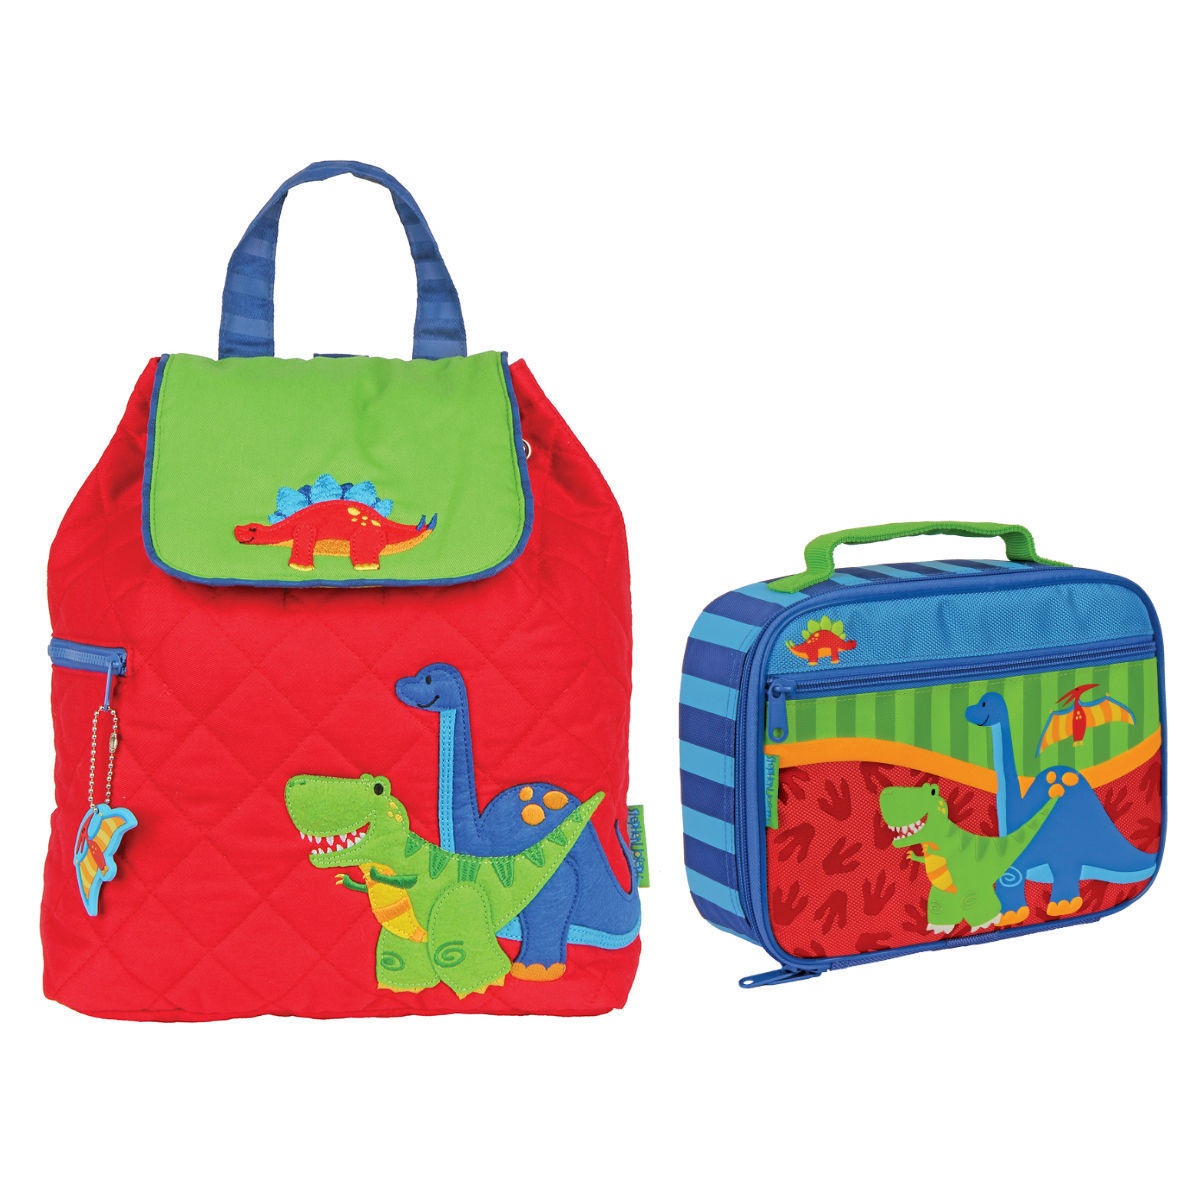 Stephen Joseph Boys Quilted Dinosaur Backpack and Lunch Box